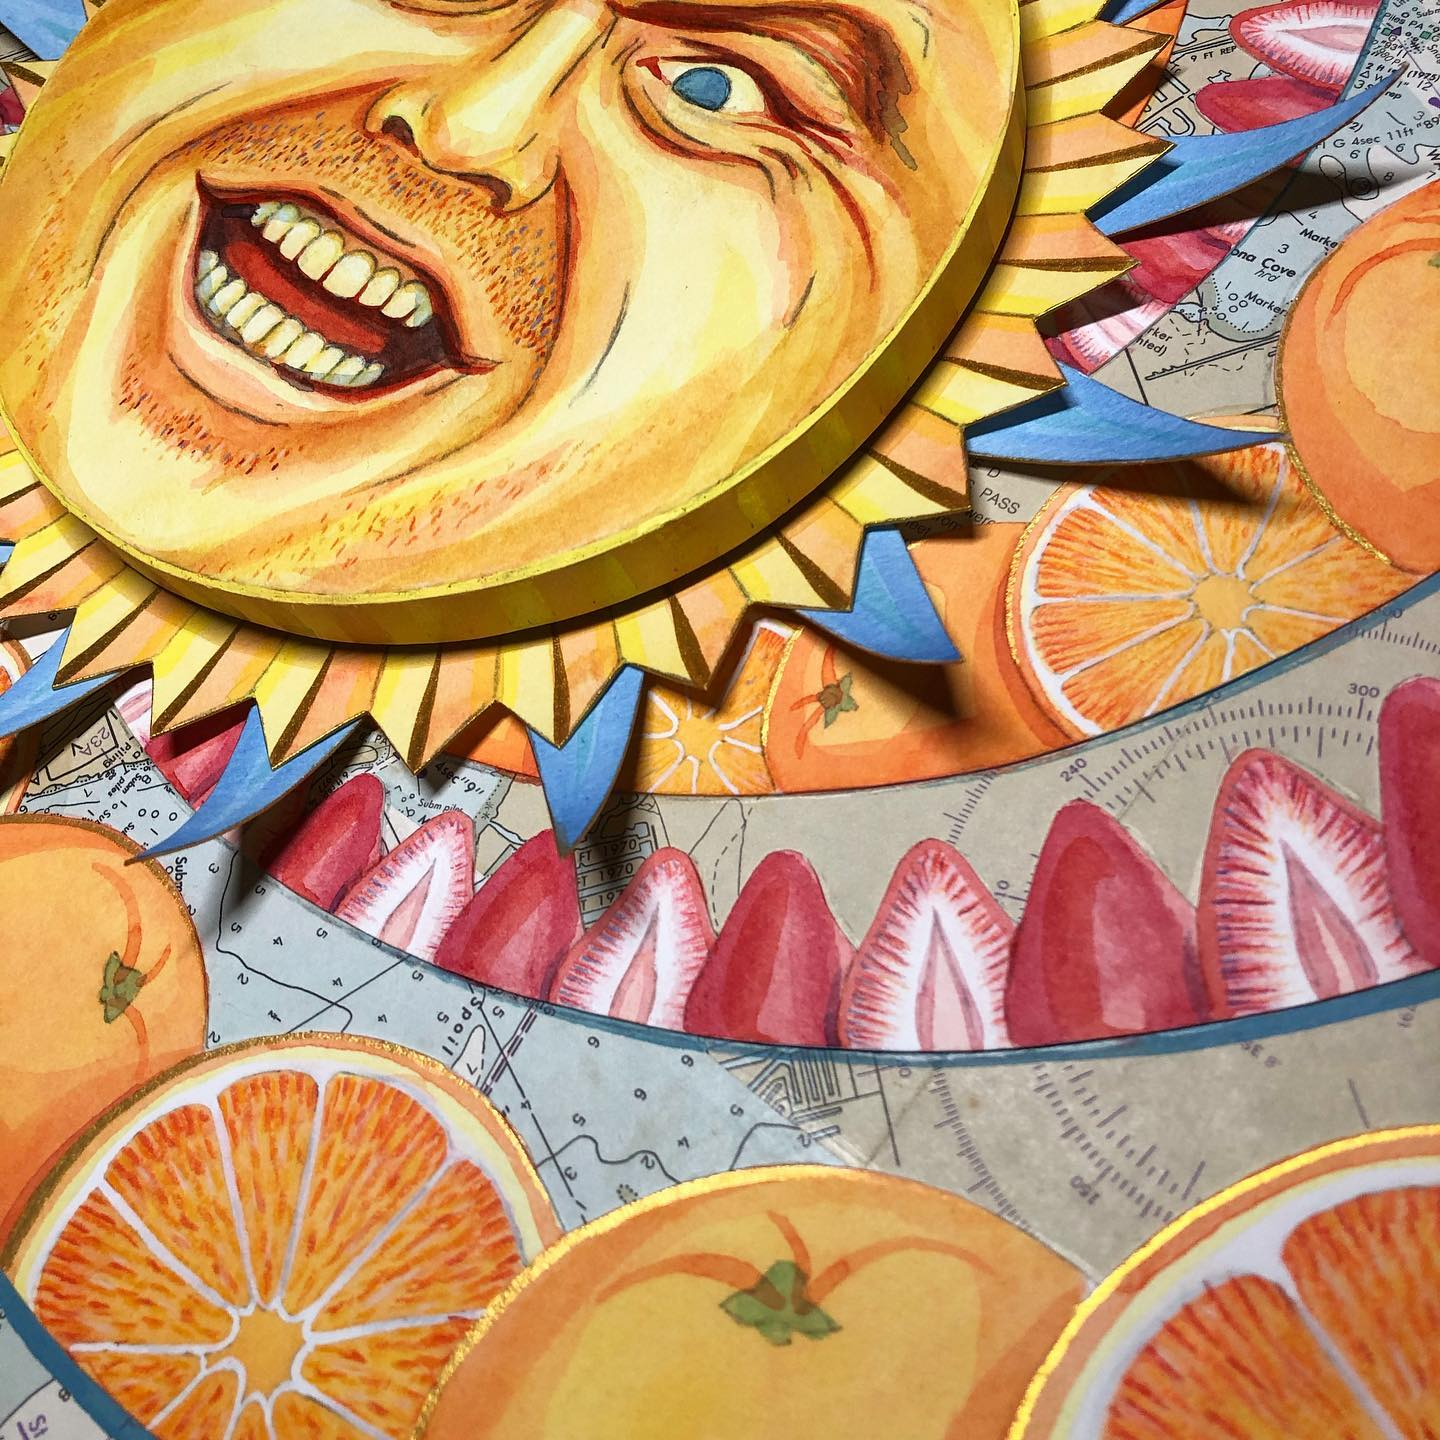 A colorful piece of art showing an angry sun face in the middle of swirls of oranges and strawberries.